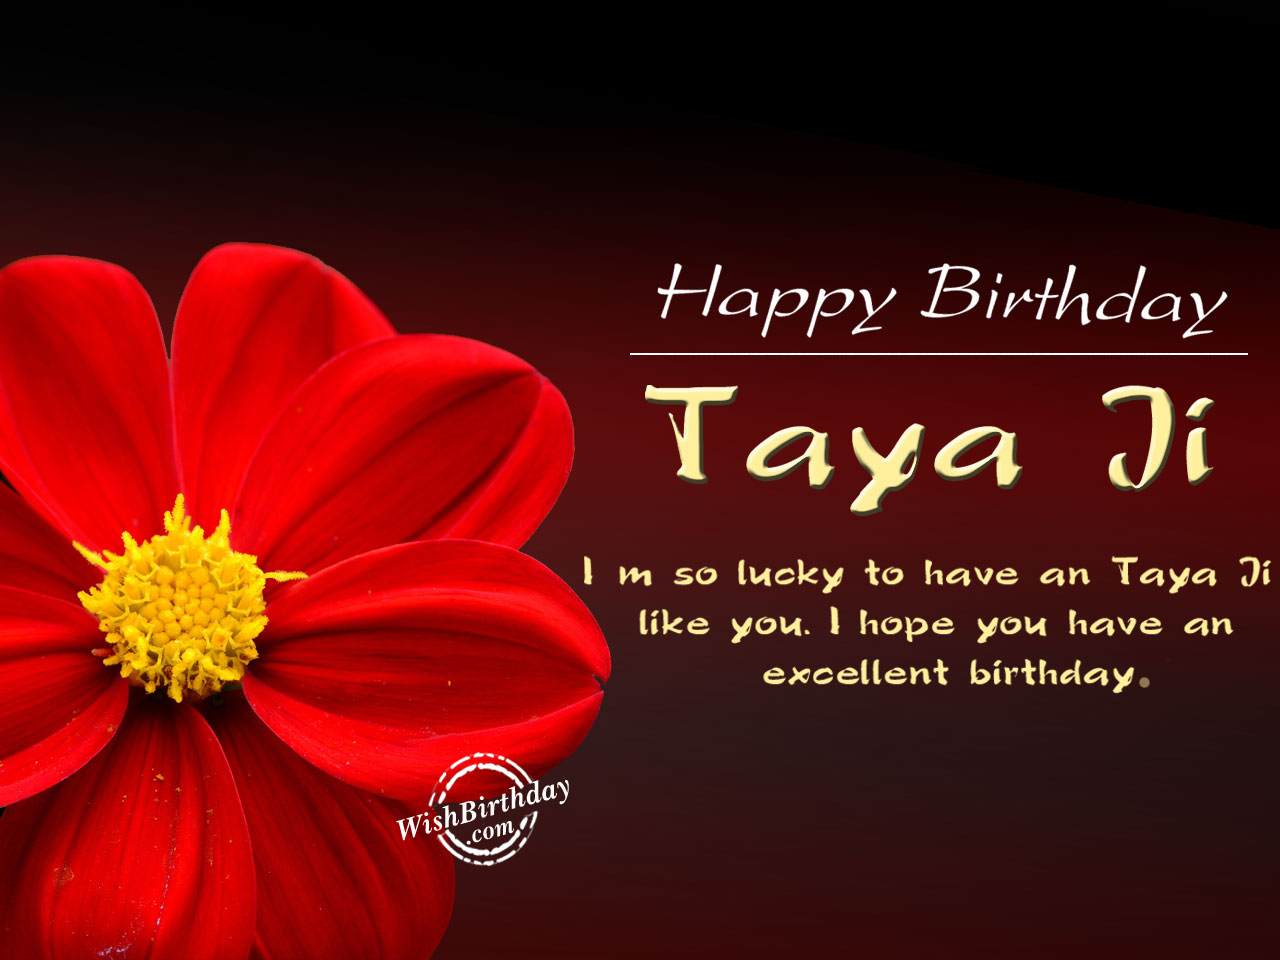 Happy Birthday Dear Taya Ji - WishBirthday.com